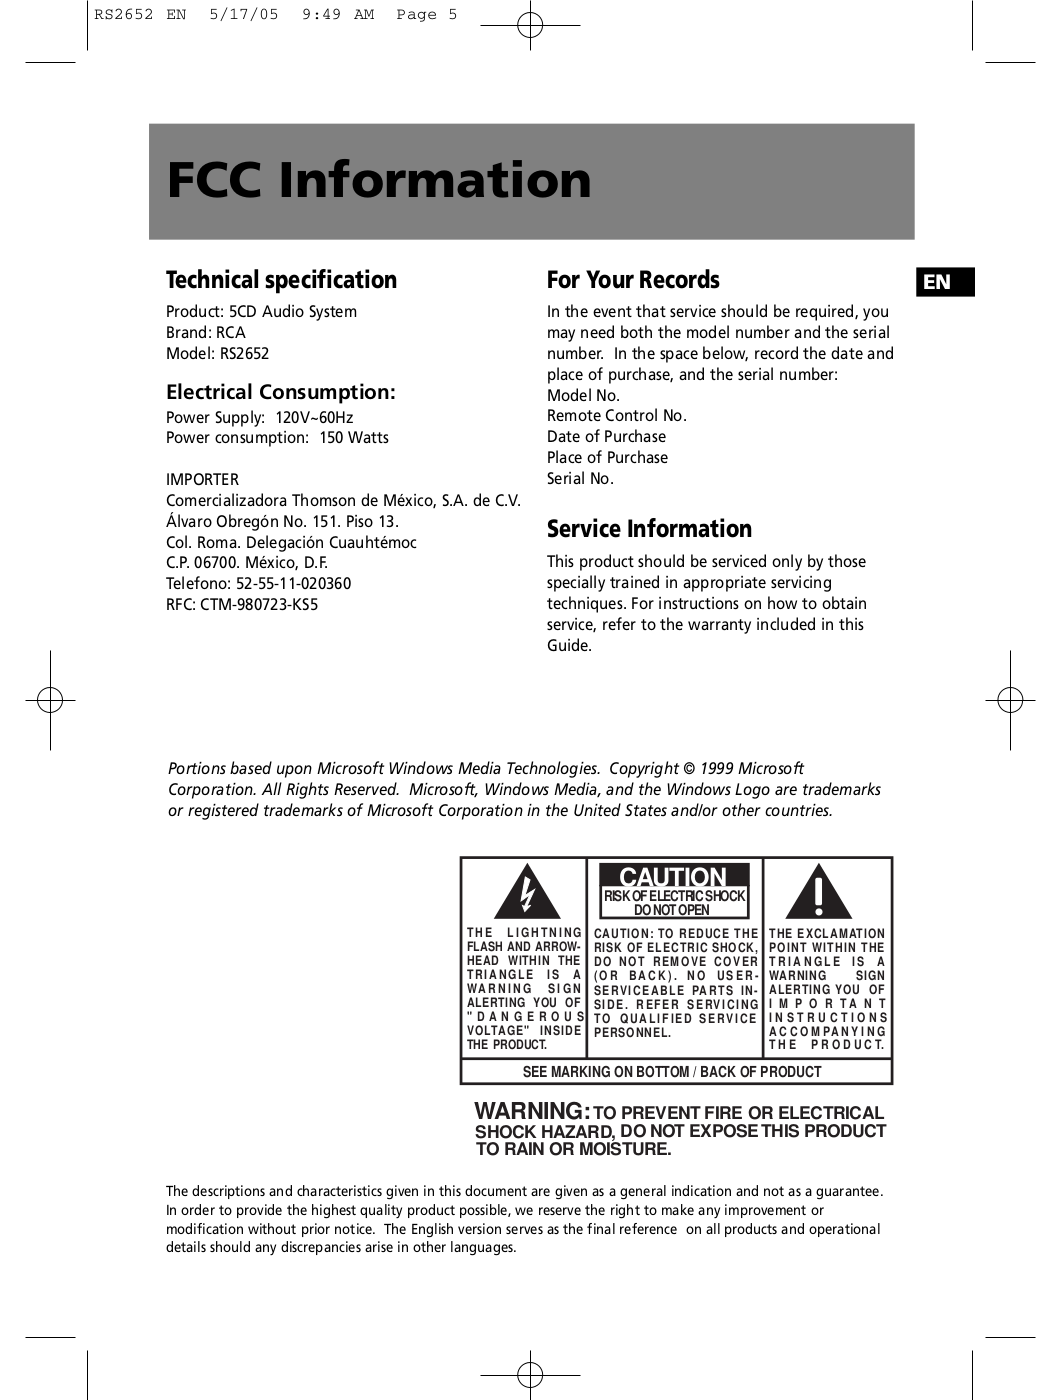 pdf manual for rca other rs2652 stereo systems rh umlib com RCA Home Theater Owners Manual RCA Clock Radio Manual